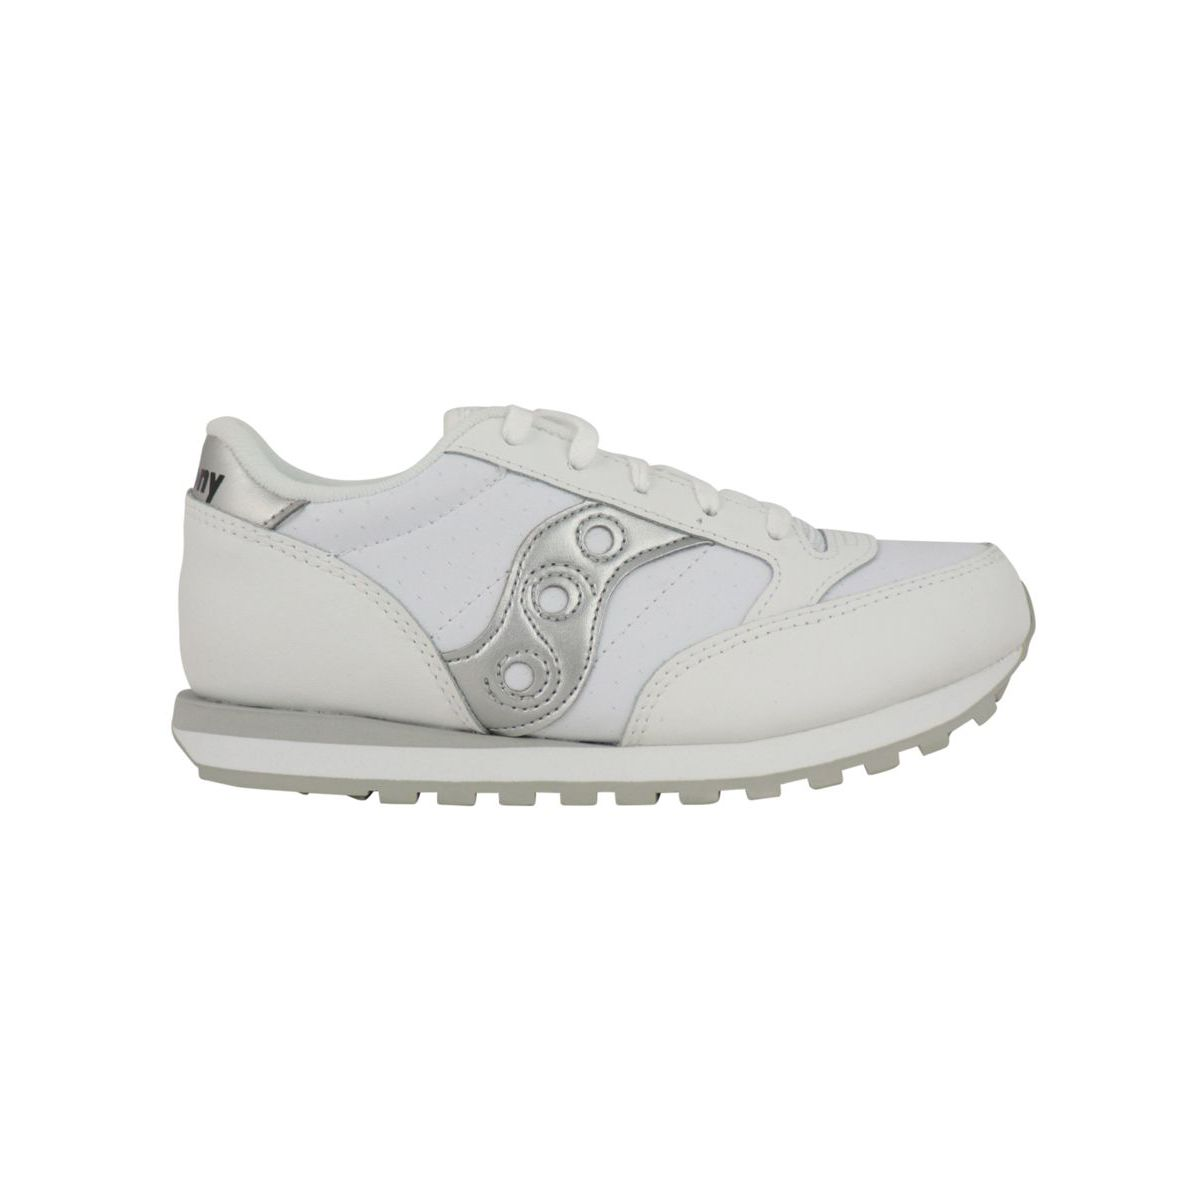 Jazz original kids silver sneakers White / silver Saucony